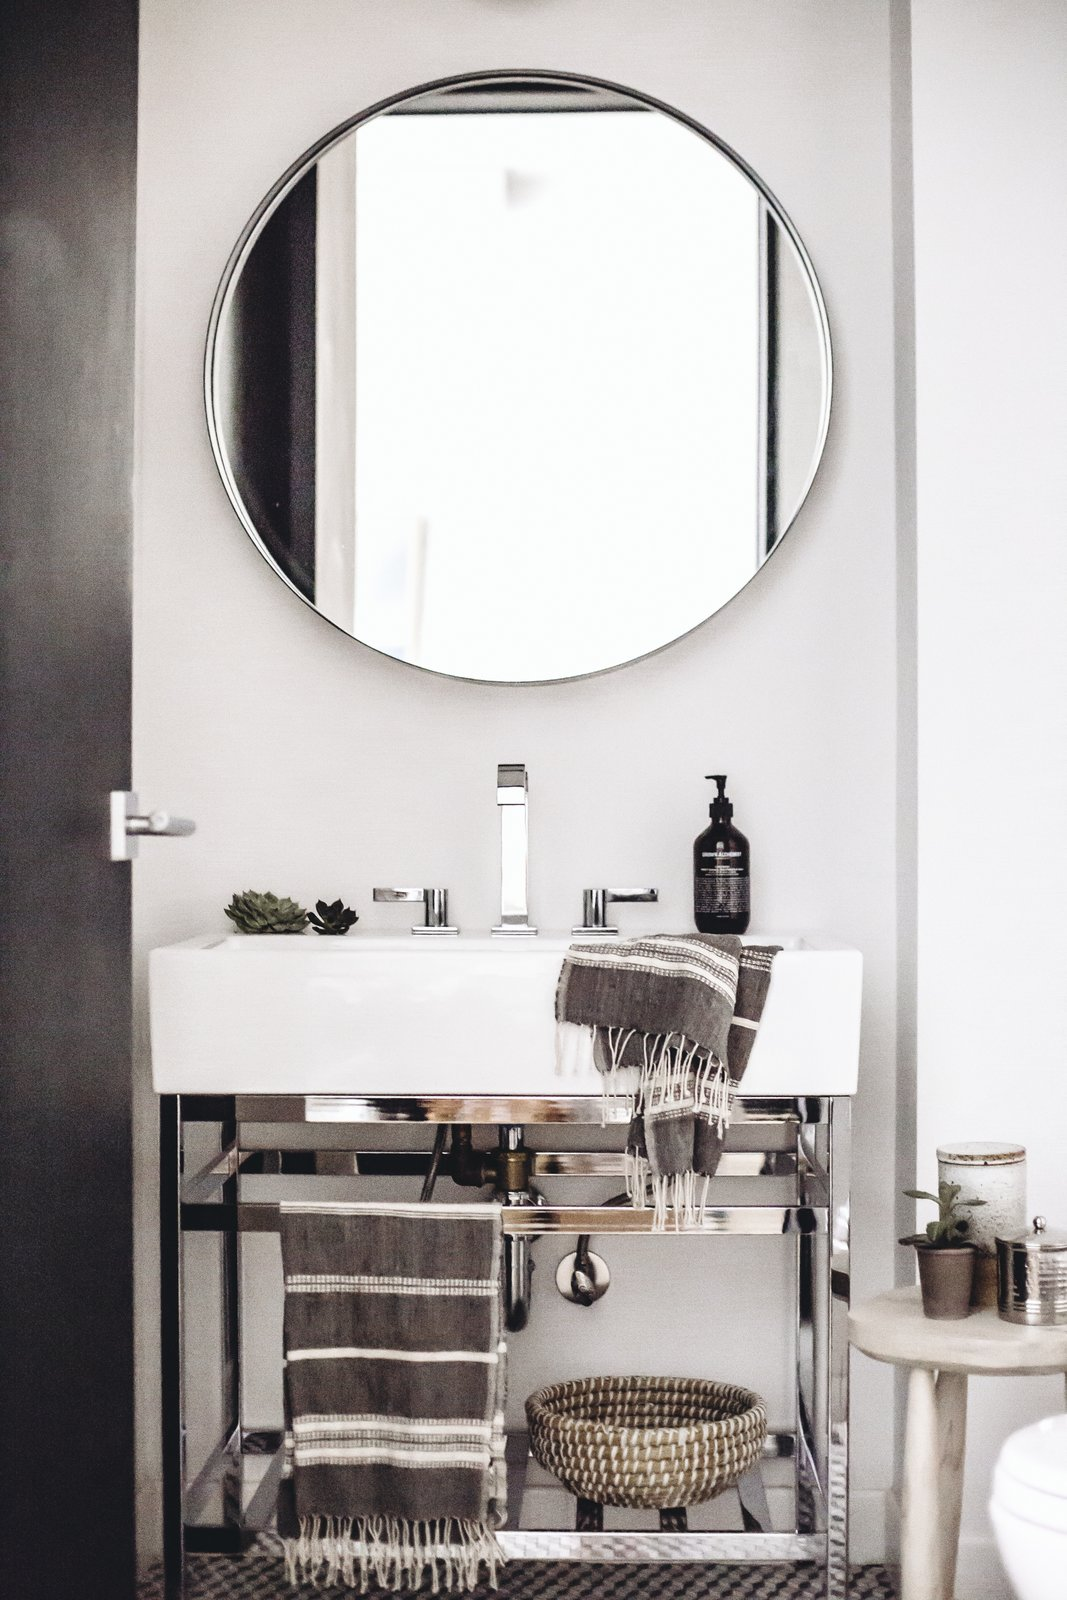 The stone-hued palette makes its way into the powder room where minimalist style is matched with luxurious textiles from Creative Women and silver finishings. A Pottery Barn vanity offers a foundation for a Dornbracht faucet and Grown Alchemist soap. (Chloe Leroux)